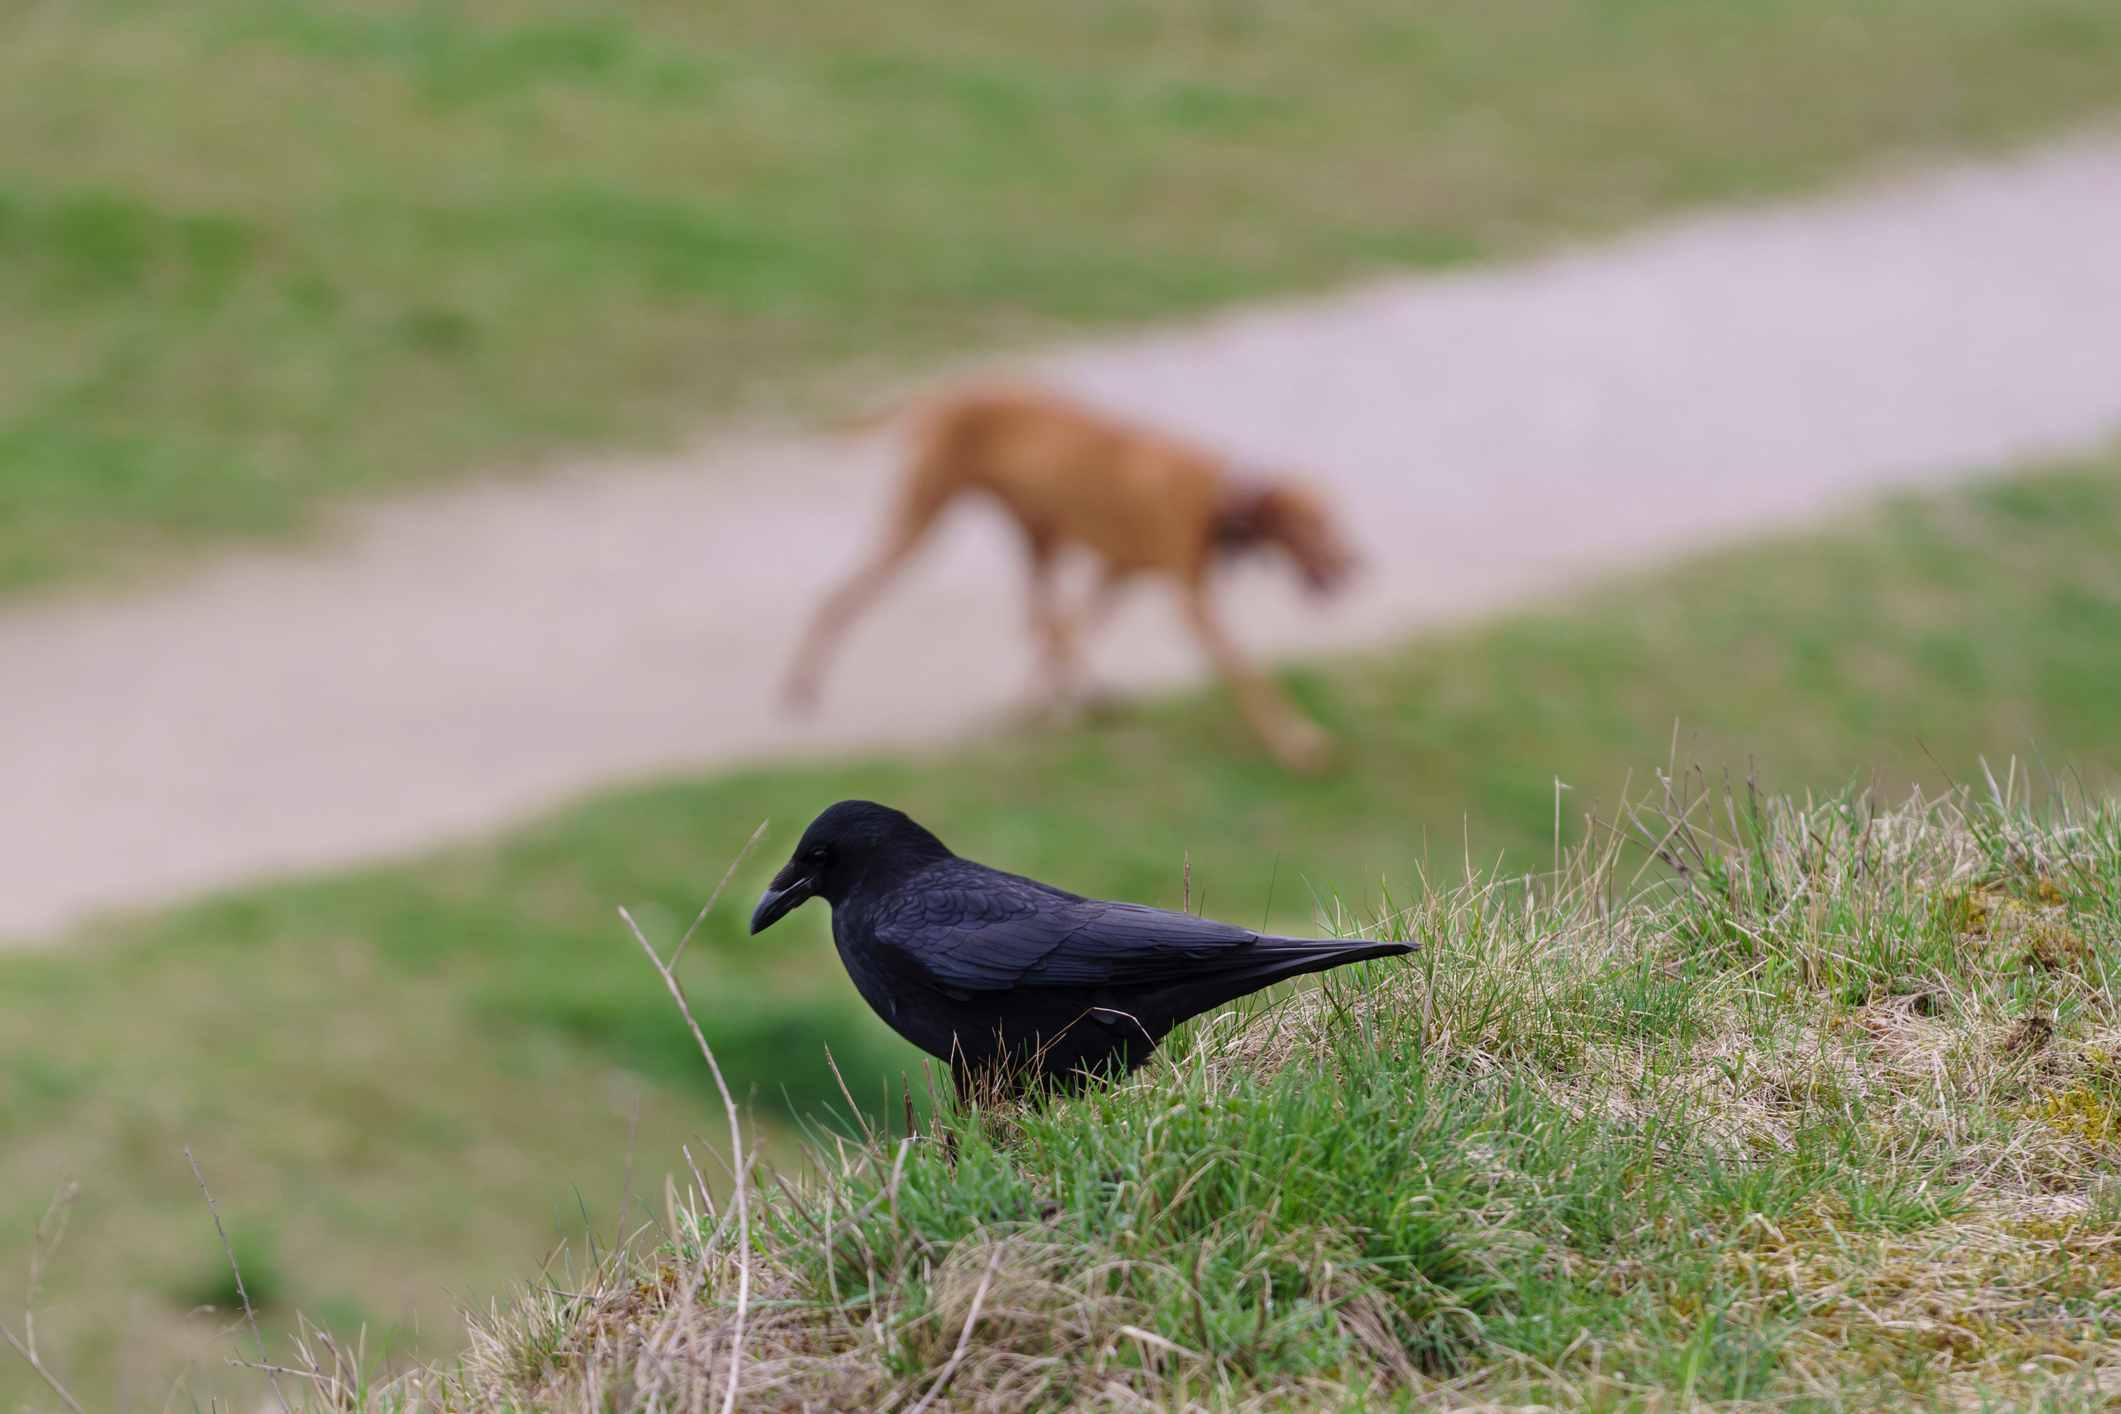 crow overlooking a dog